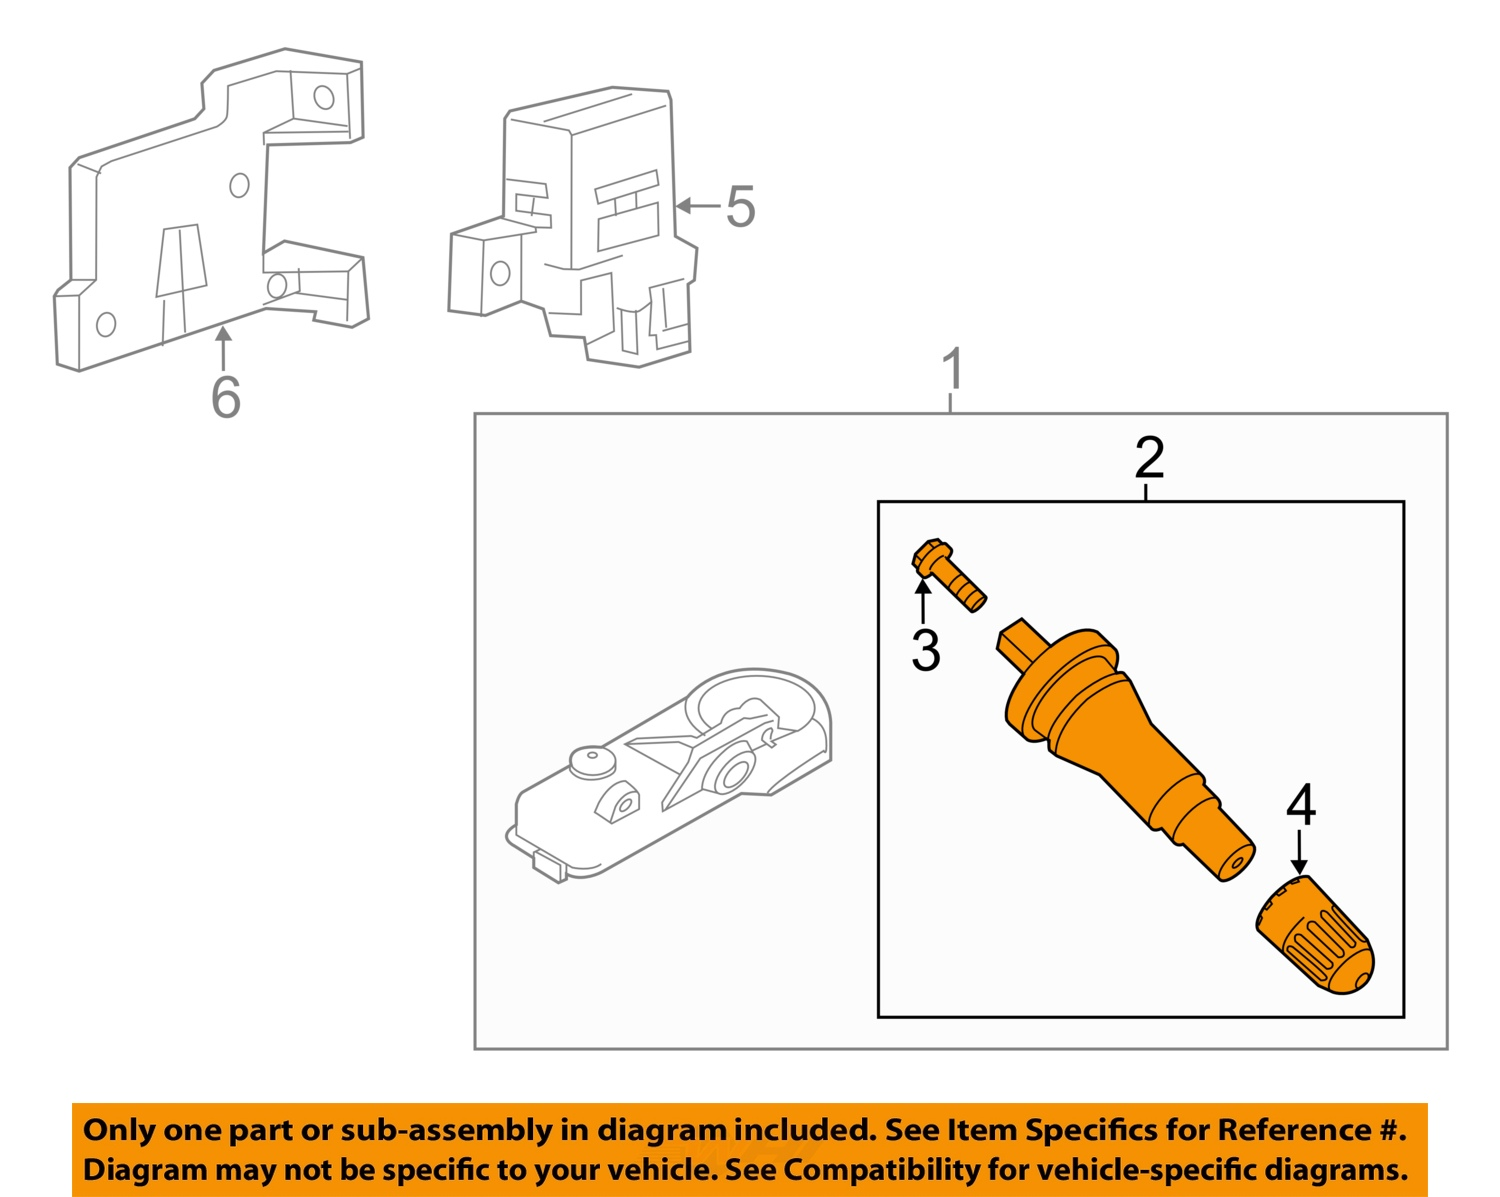 hight resolution of  2 on diagram only genuine oe factory original item